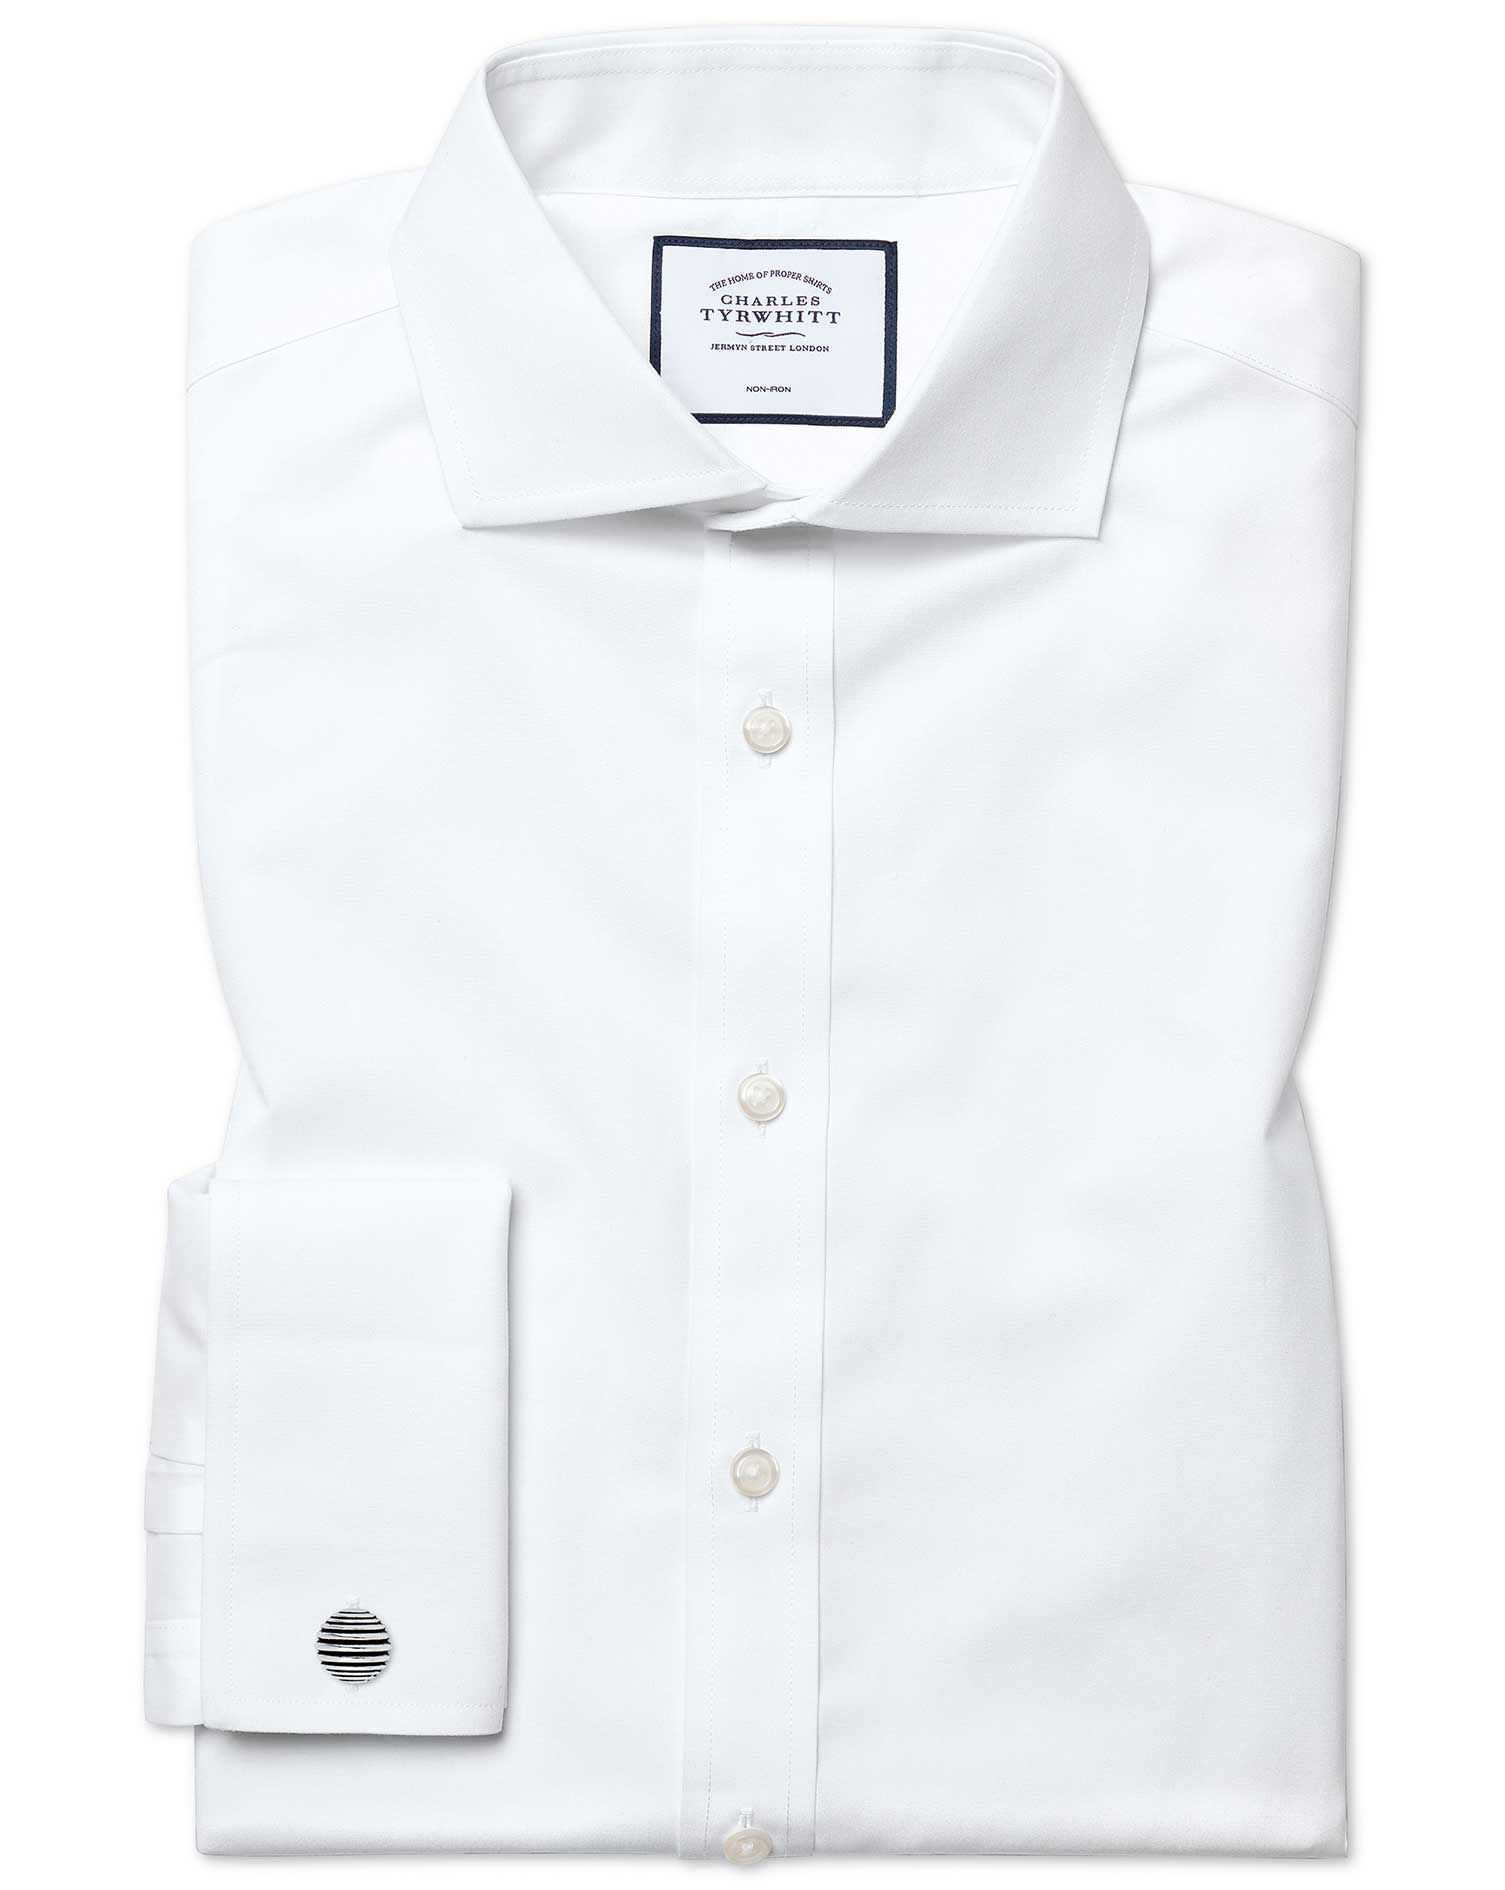 Extra Slim Fit Cutaway Non-Iron Poplin White Cotton Formal Shirt Single Cuff Size 16.5/38 by Charles